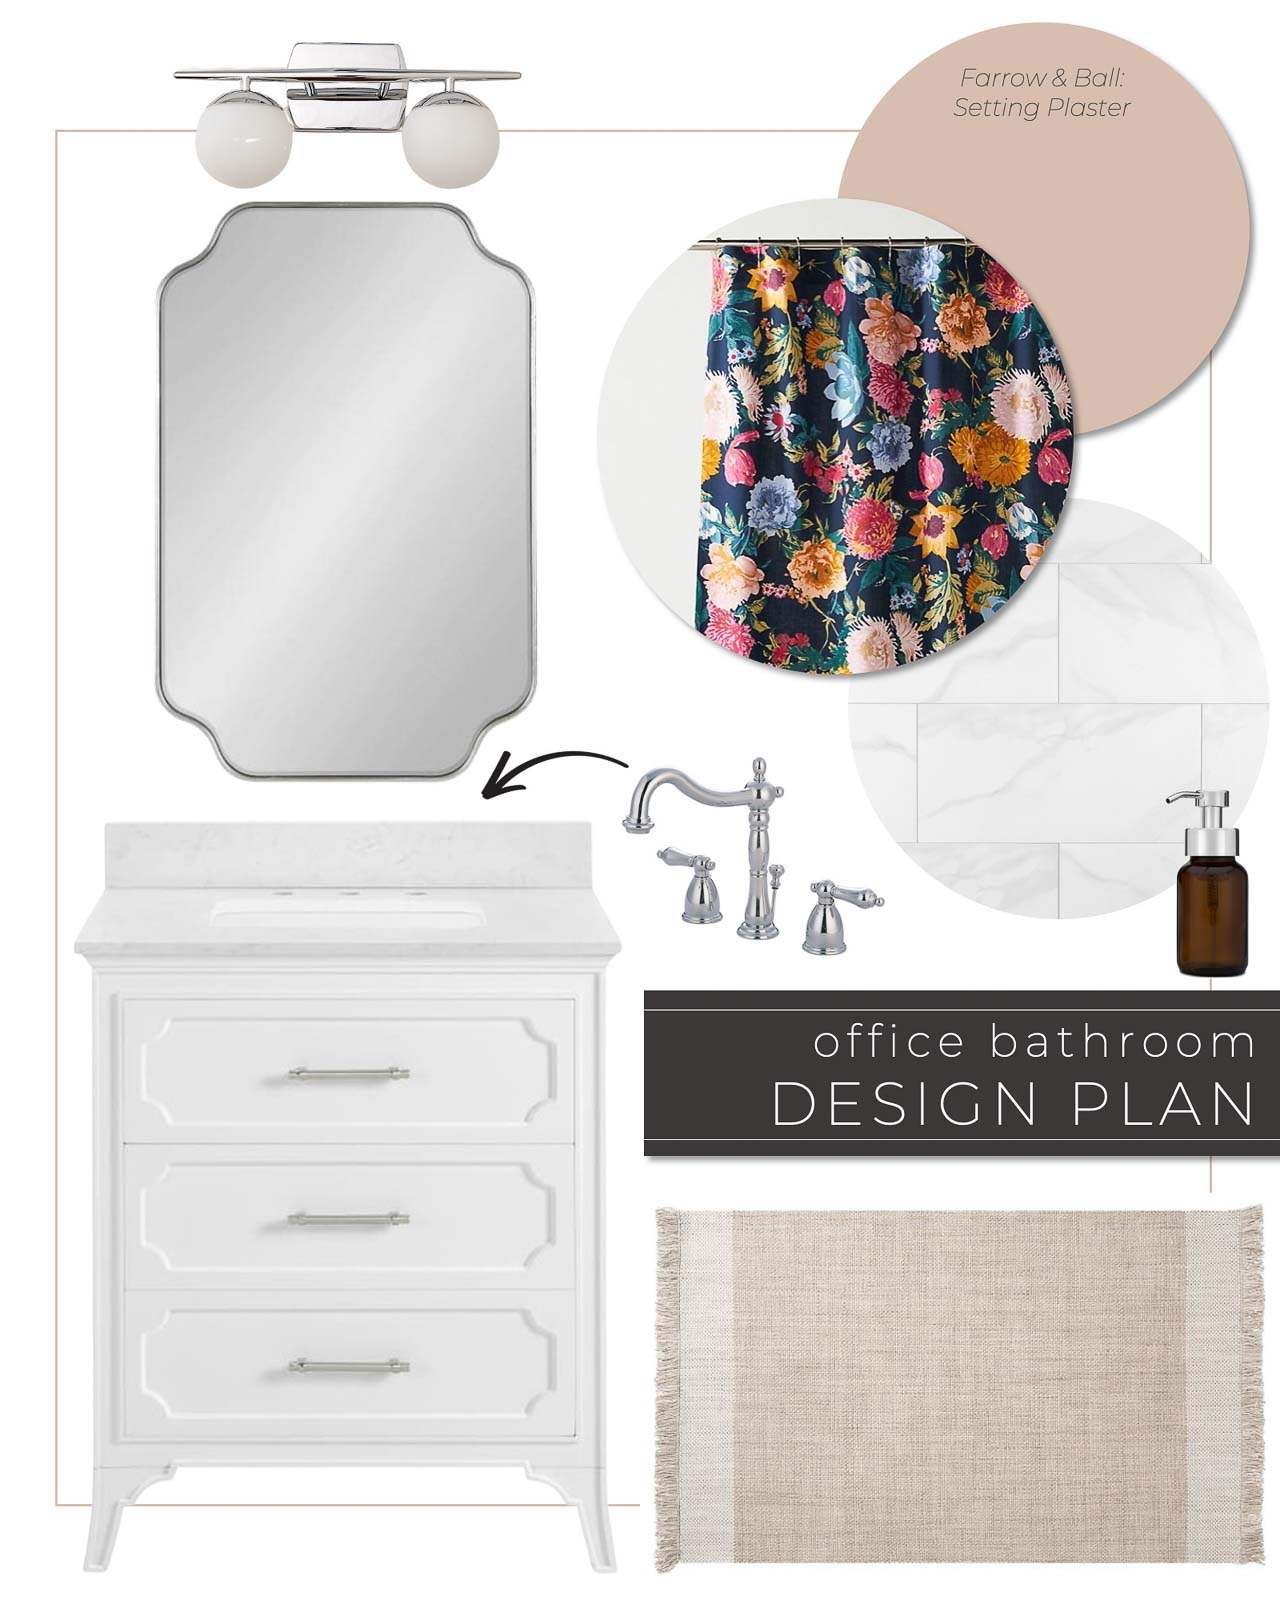 Colorful Guest Bathroom Design Plan with White Vanity and Pink Painted Walls